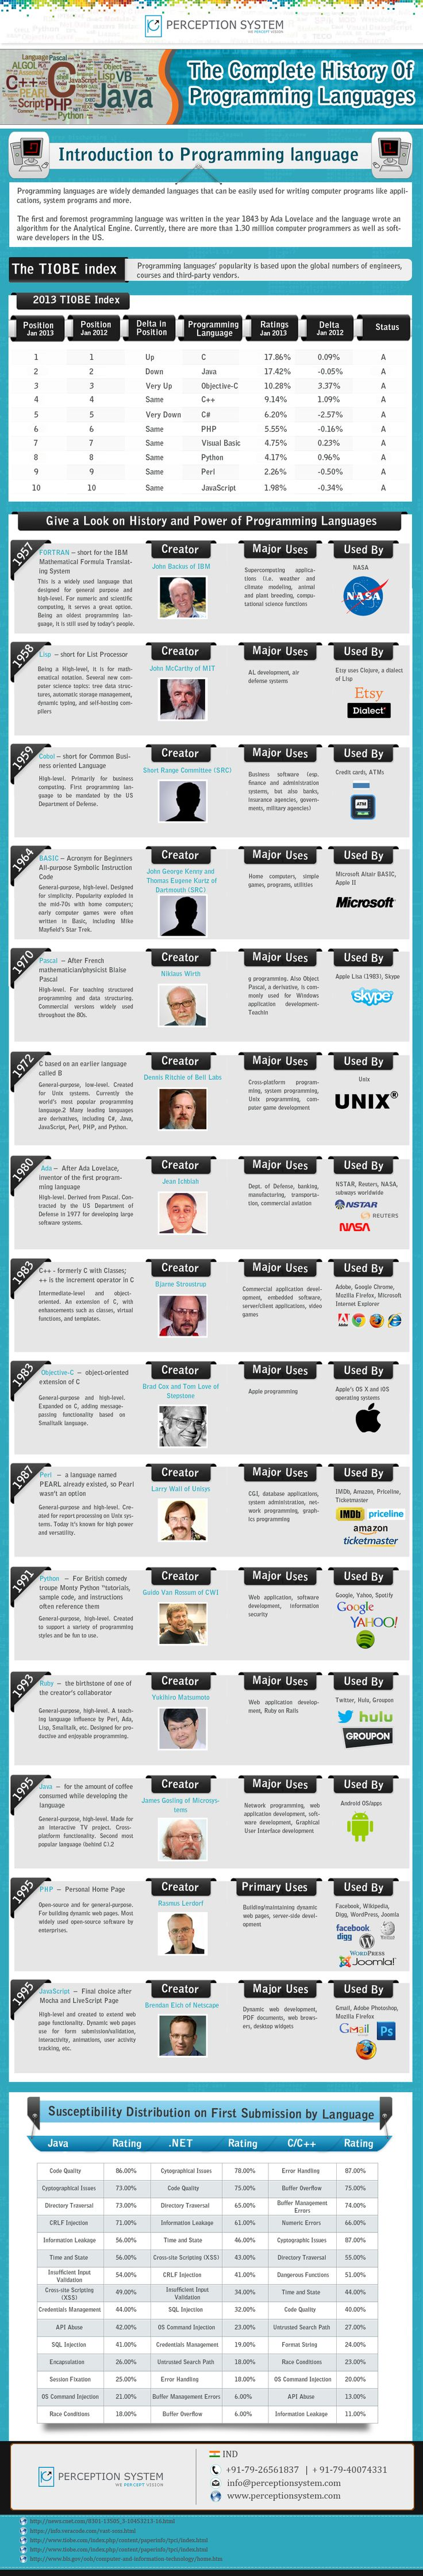 Highly Popular Programming Languages' History - From Born to Young